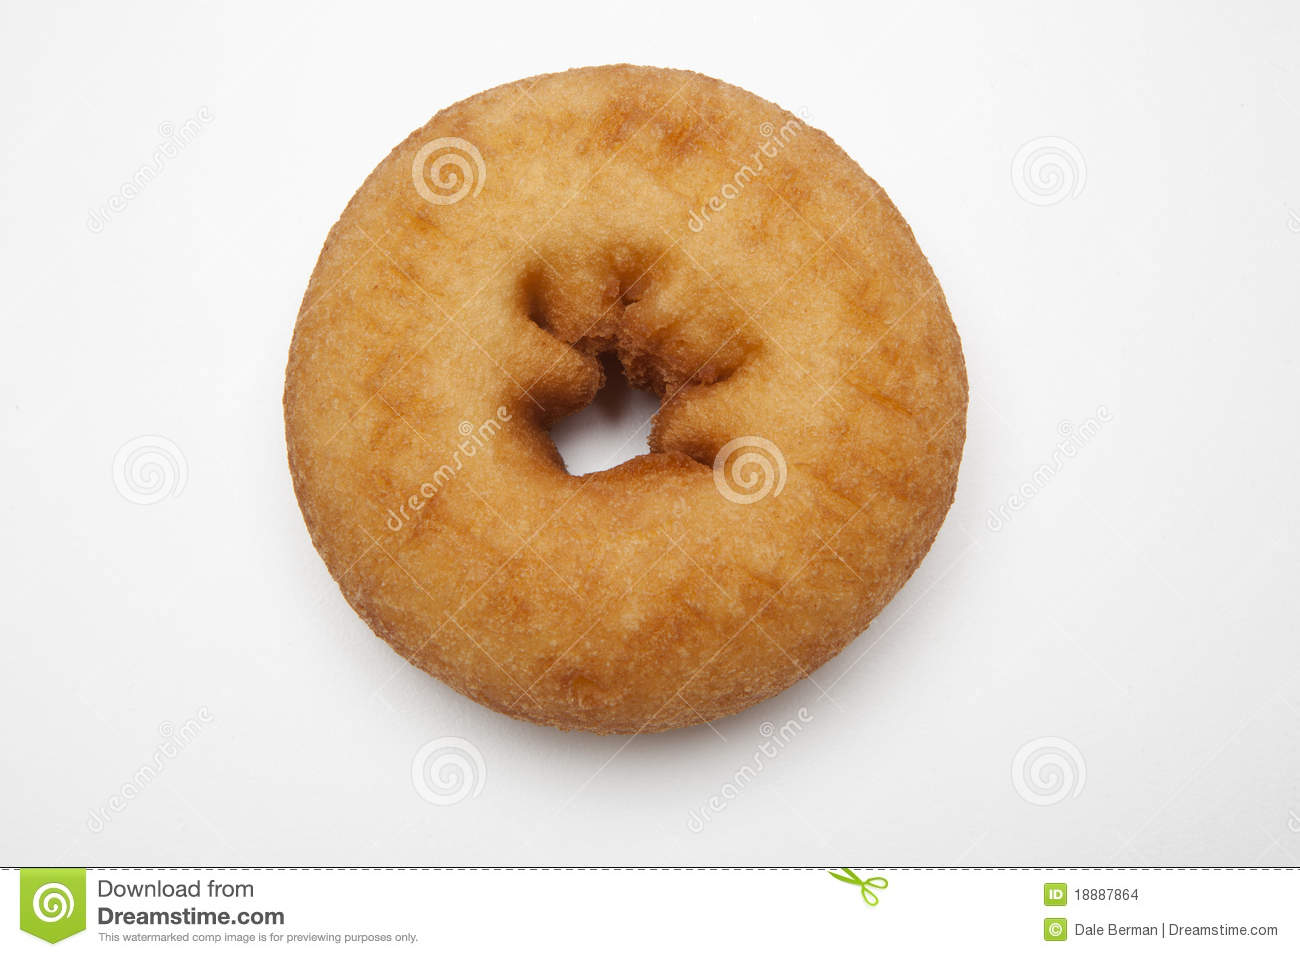 Photographs of a single plain doughnut on a white background.